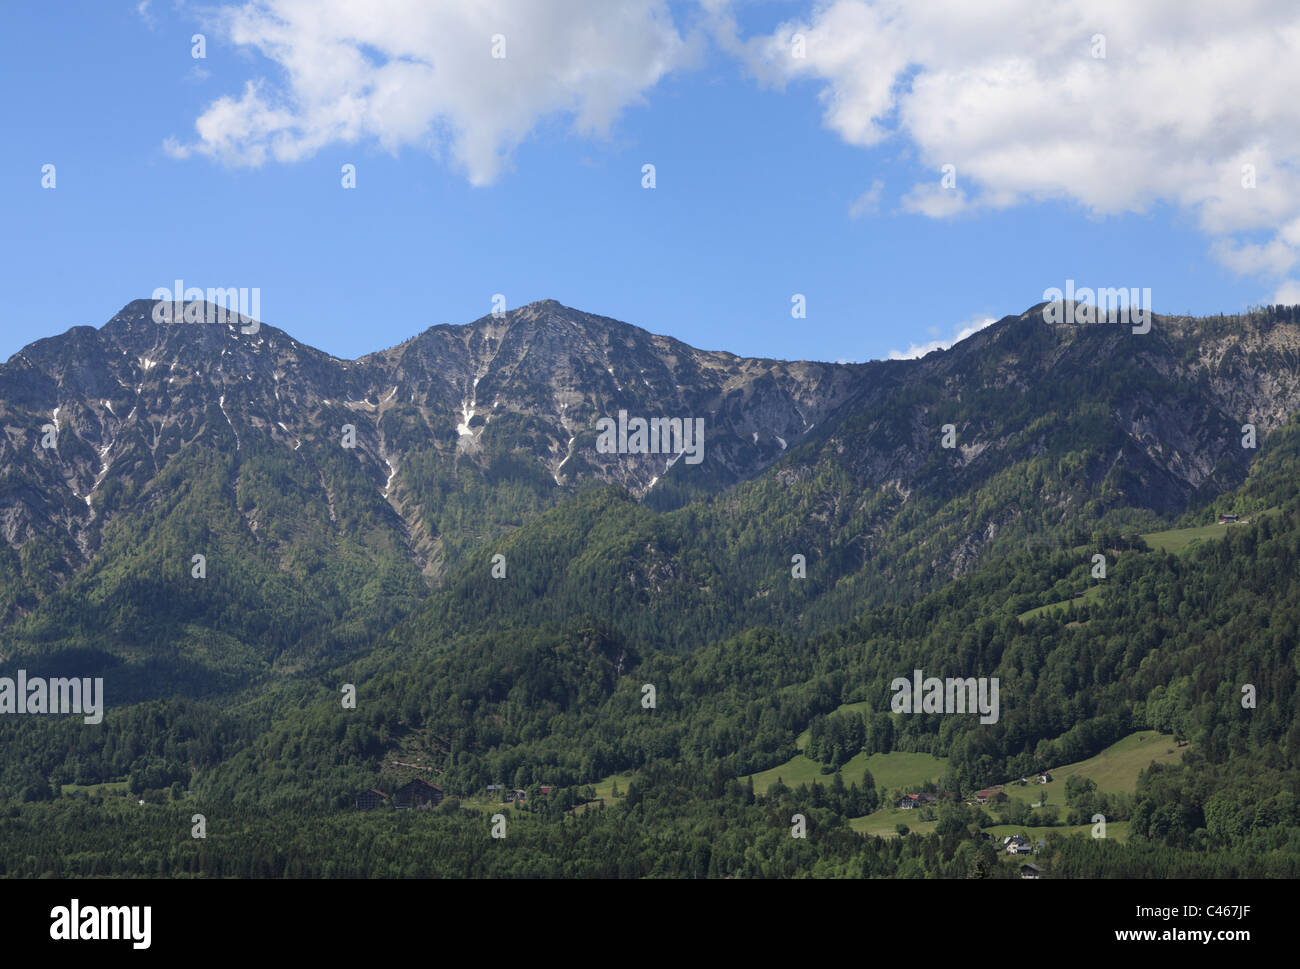 The Kalmberg mountain in Austria towering over the outskirts of Bad Goisern. - Stock Image